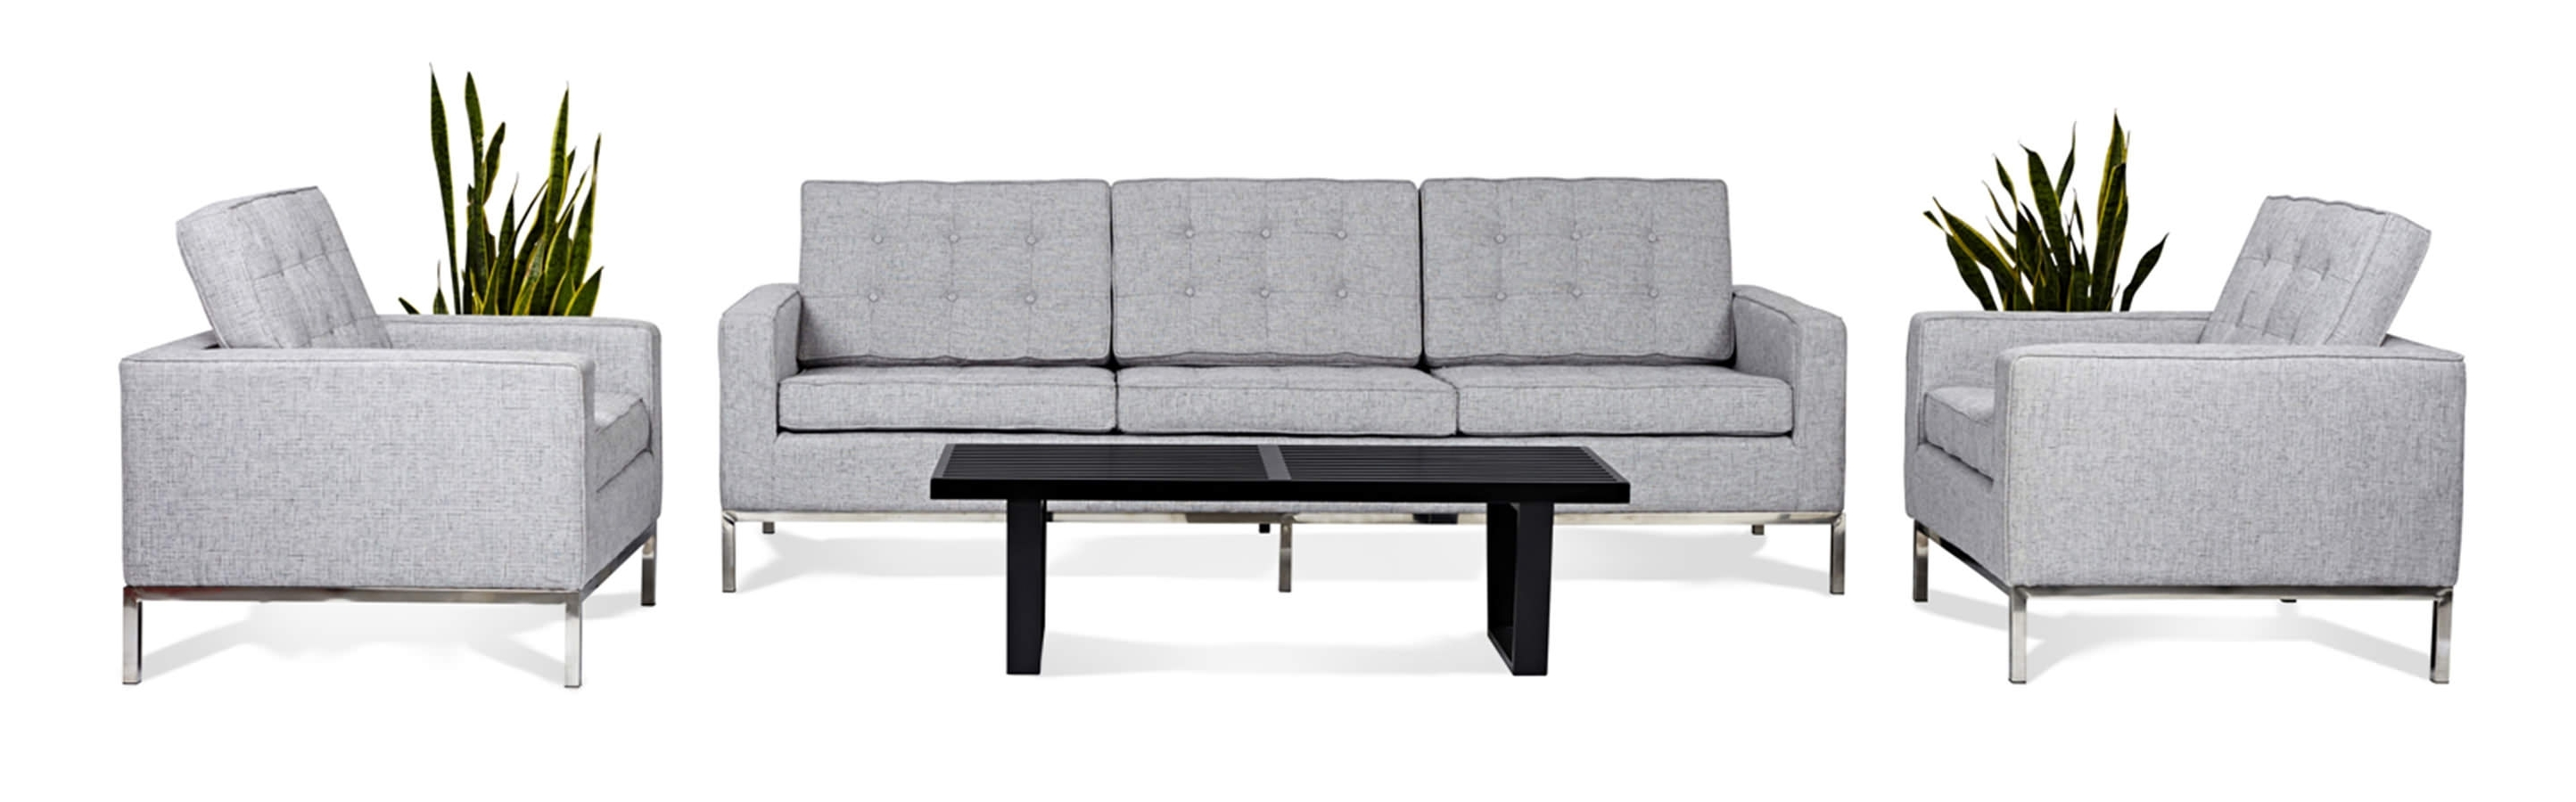 Recent Florence Knoll Style Living Room Sets Intended For Florence Knoll Style Sofas (View 19 of 20)